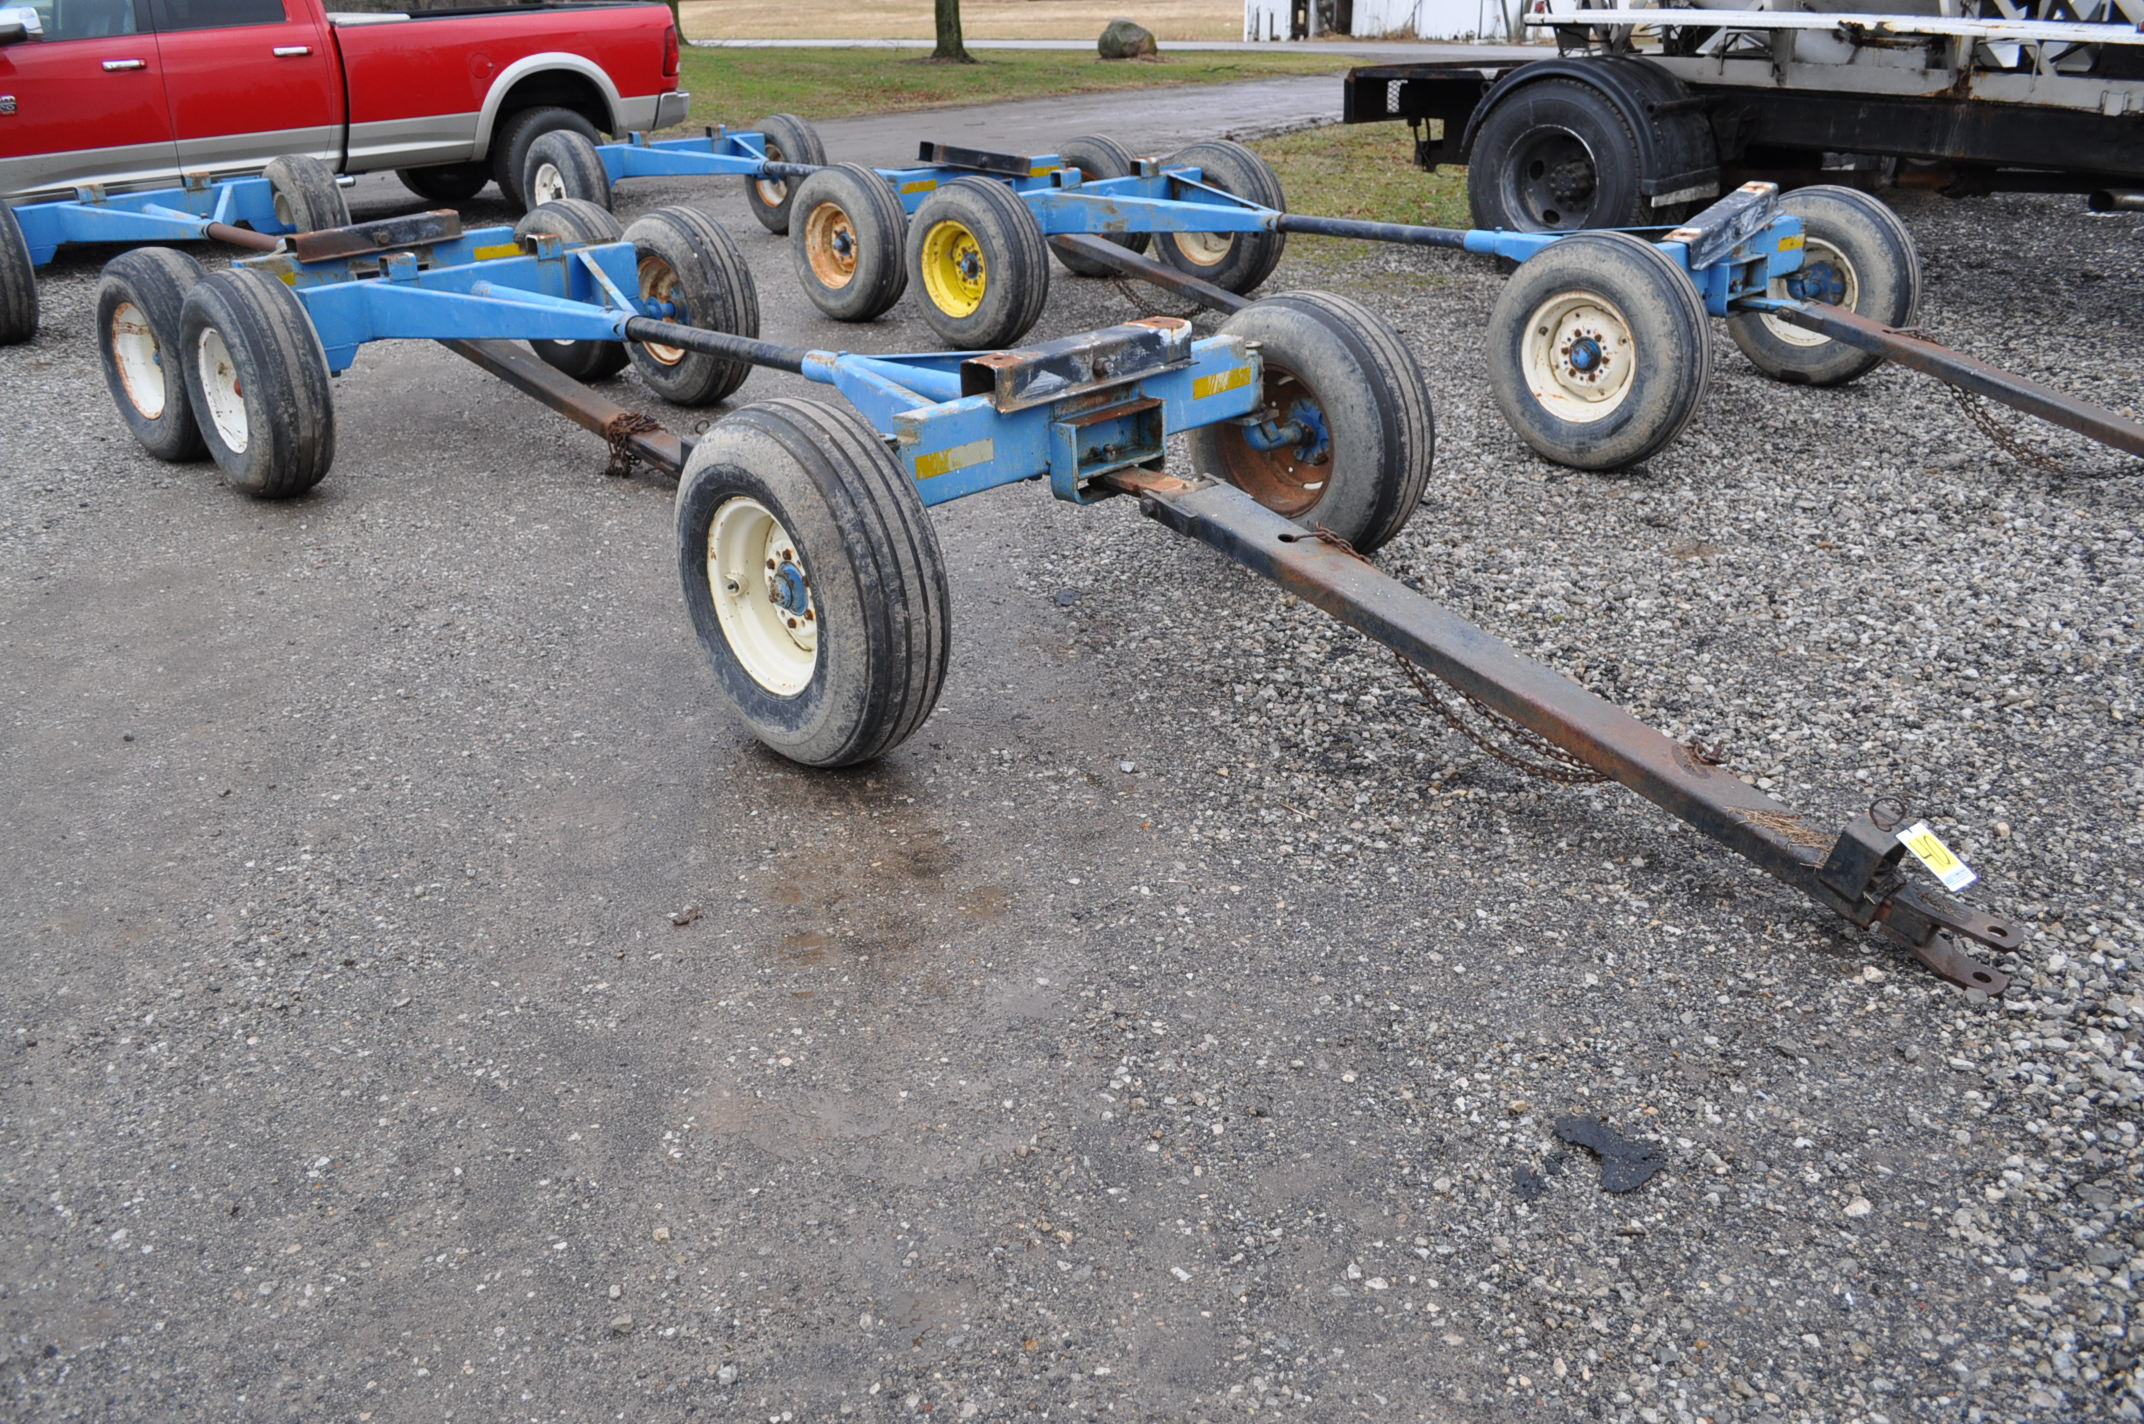 NH3 wagon gear - Image 2 of 8